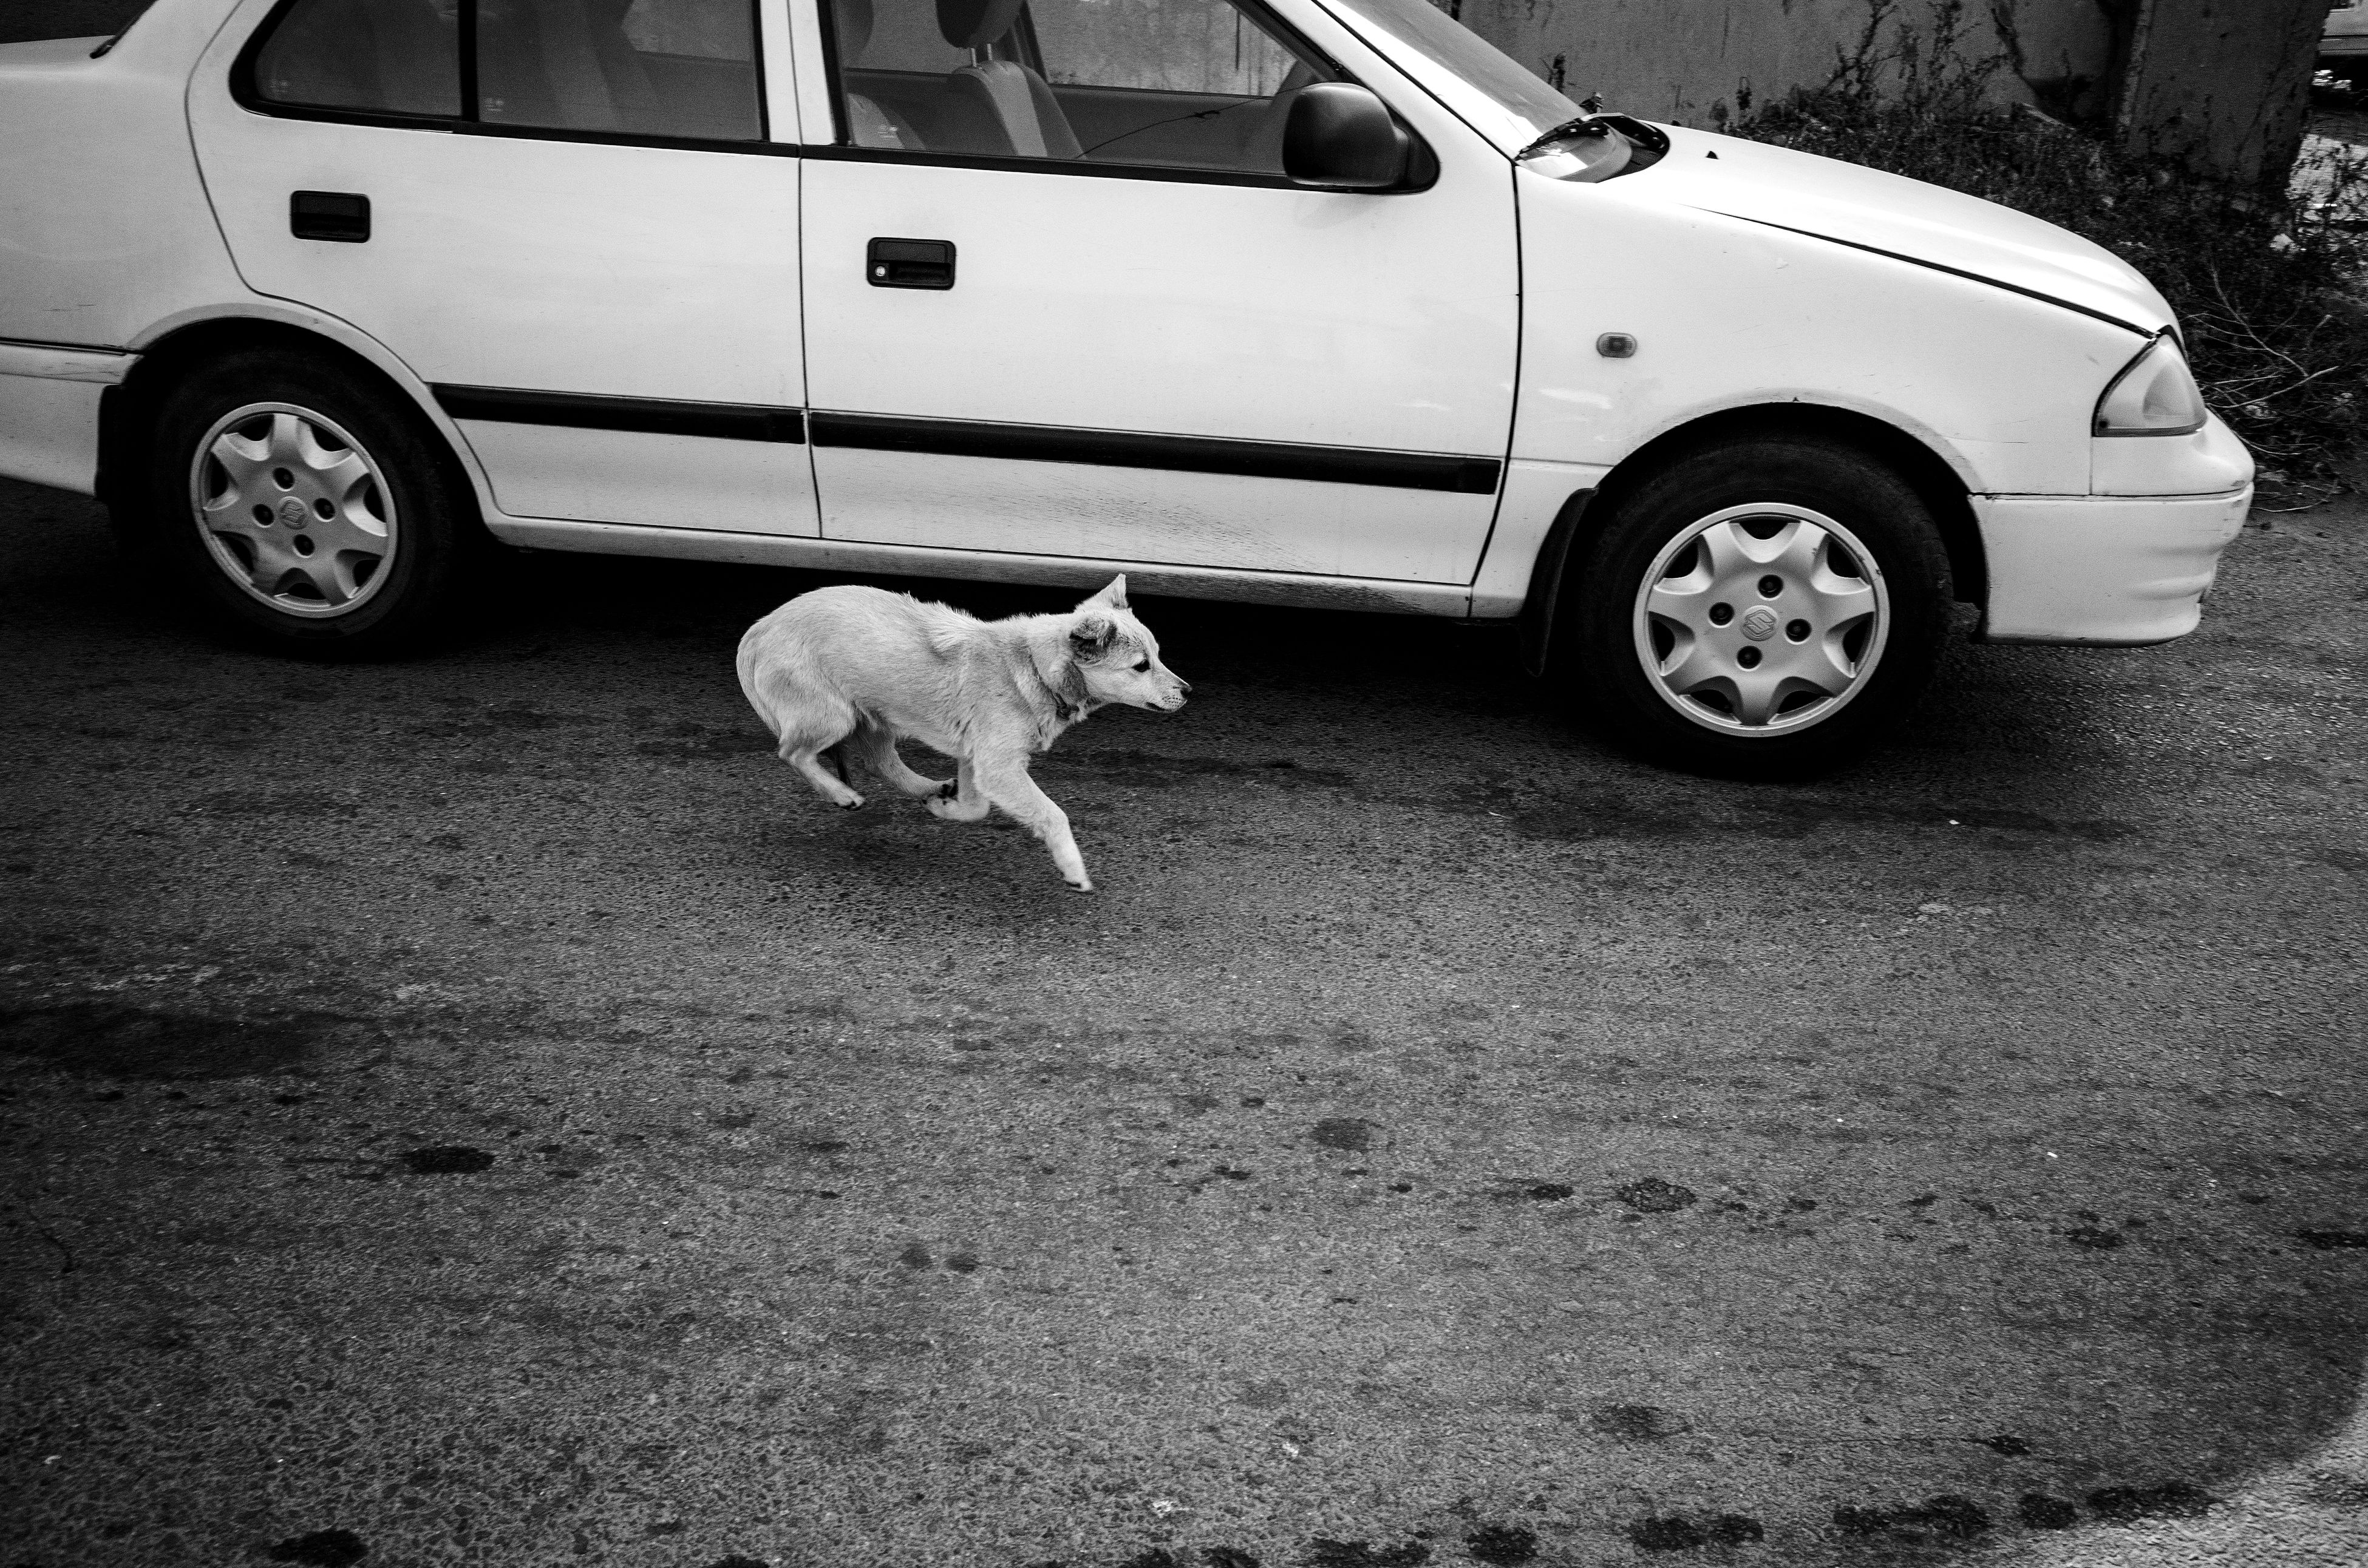 transportation, land vehicle, animal themes, mode of transport, domestic animals, one animal, car, mammal, street, pets, road, stationary, outdoors, day, side view, dog, no people, bicycle, wheel, sunlight